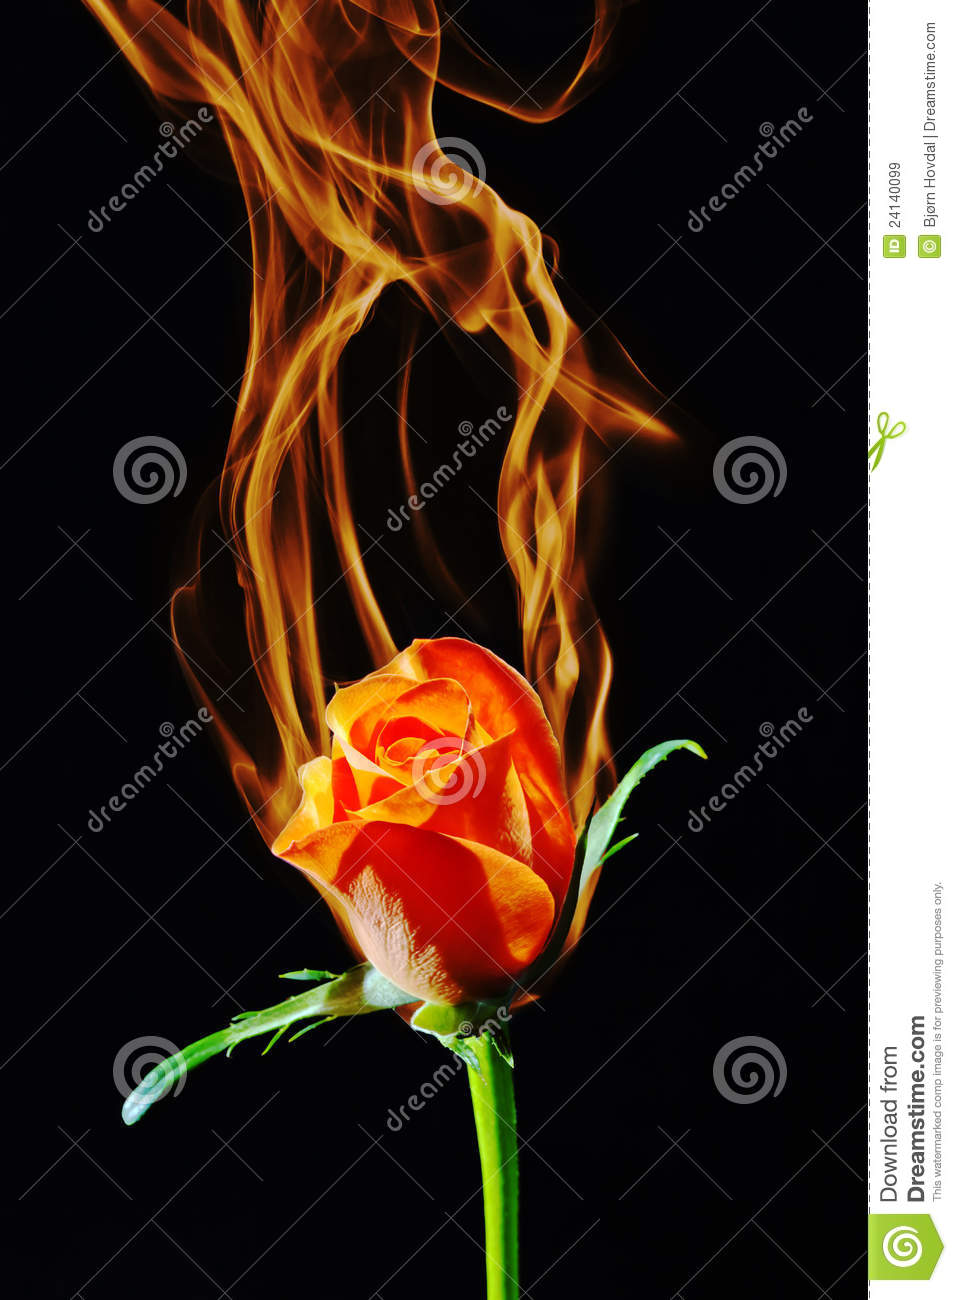 Rose On Fire Royalty Free Stock Images Image 24140099